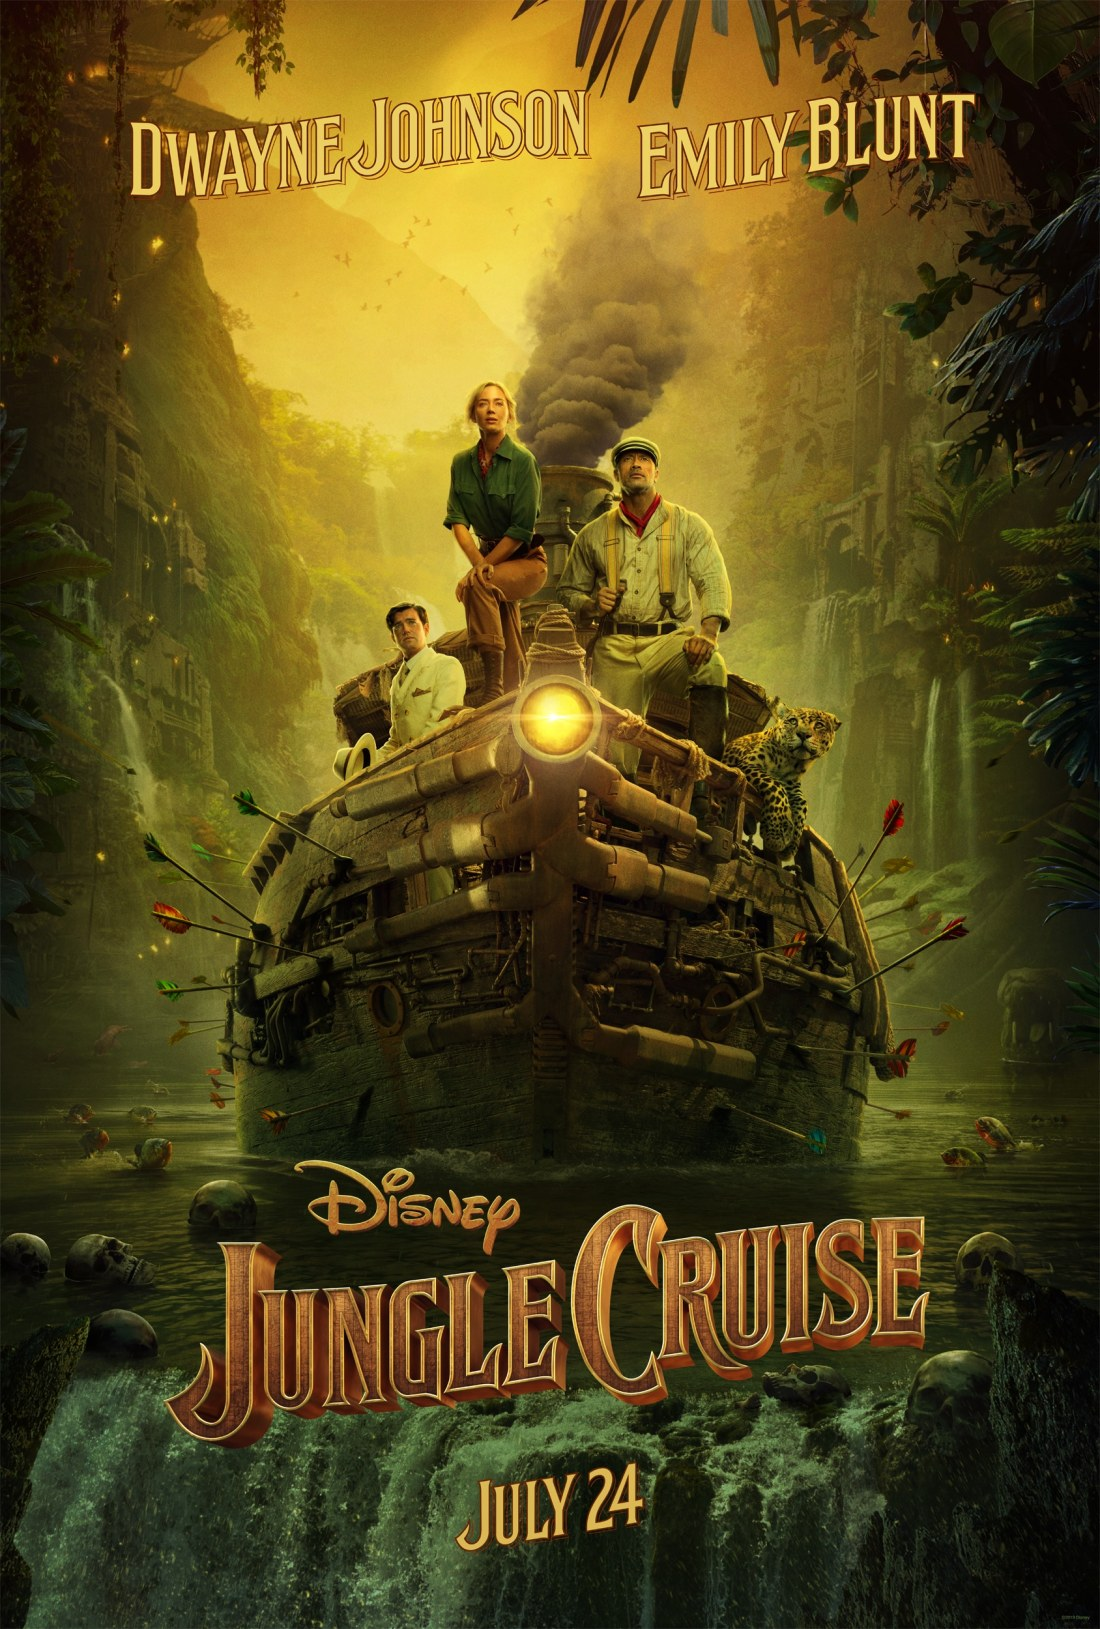 Disney's Jungle Cruise Movie Poster. Grab a first look at Disney's Jungle Cruise film set to hit theatres July 24, 2020. Inspired by the famous Disneyland theme park ride, Disney's JUNGLE CRUISE is an adventure-filled, Amazon-jungle expedition starring Dwayne Johnson as the charismatic riverboat captain and Emily Blunt as a determined explorer on a research mission.